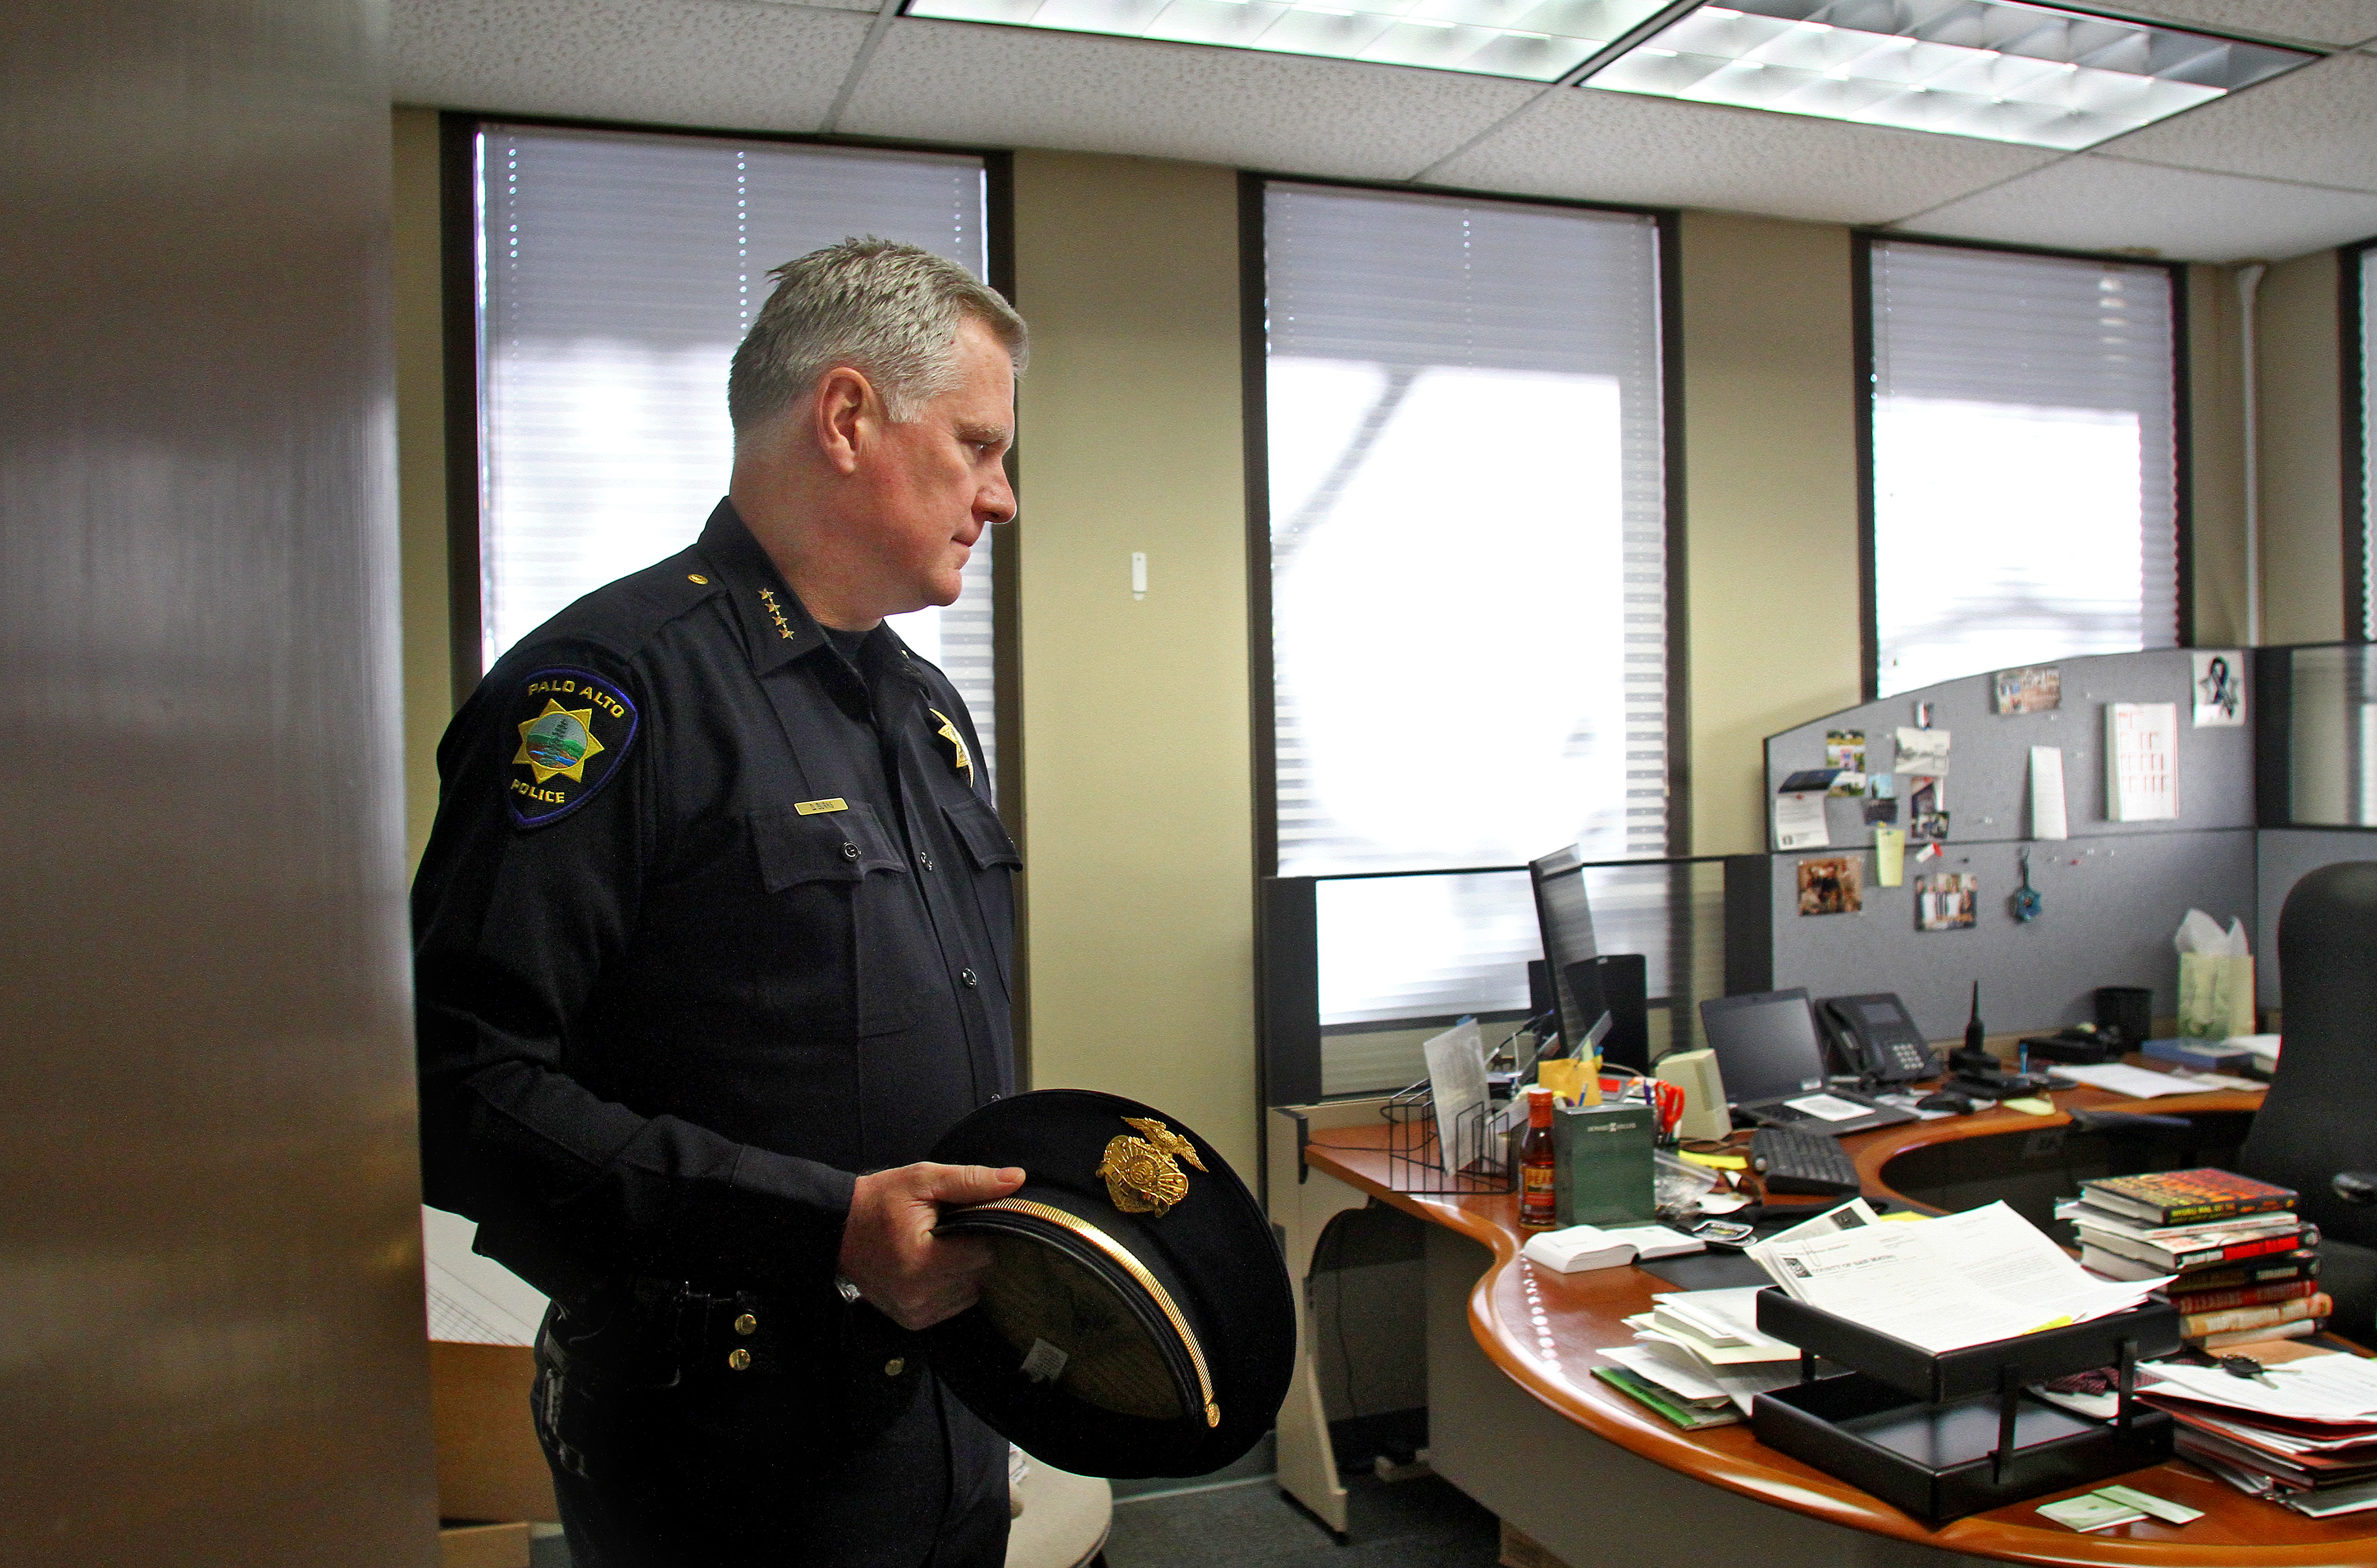 Palo Alto Police Chief Dennis Burns stands on Dec. 29 in his office at City Hall on his last day of workbeforeretiring. Photo by Veronica Weber/Palo Alto Weekly.